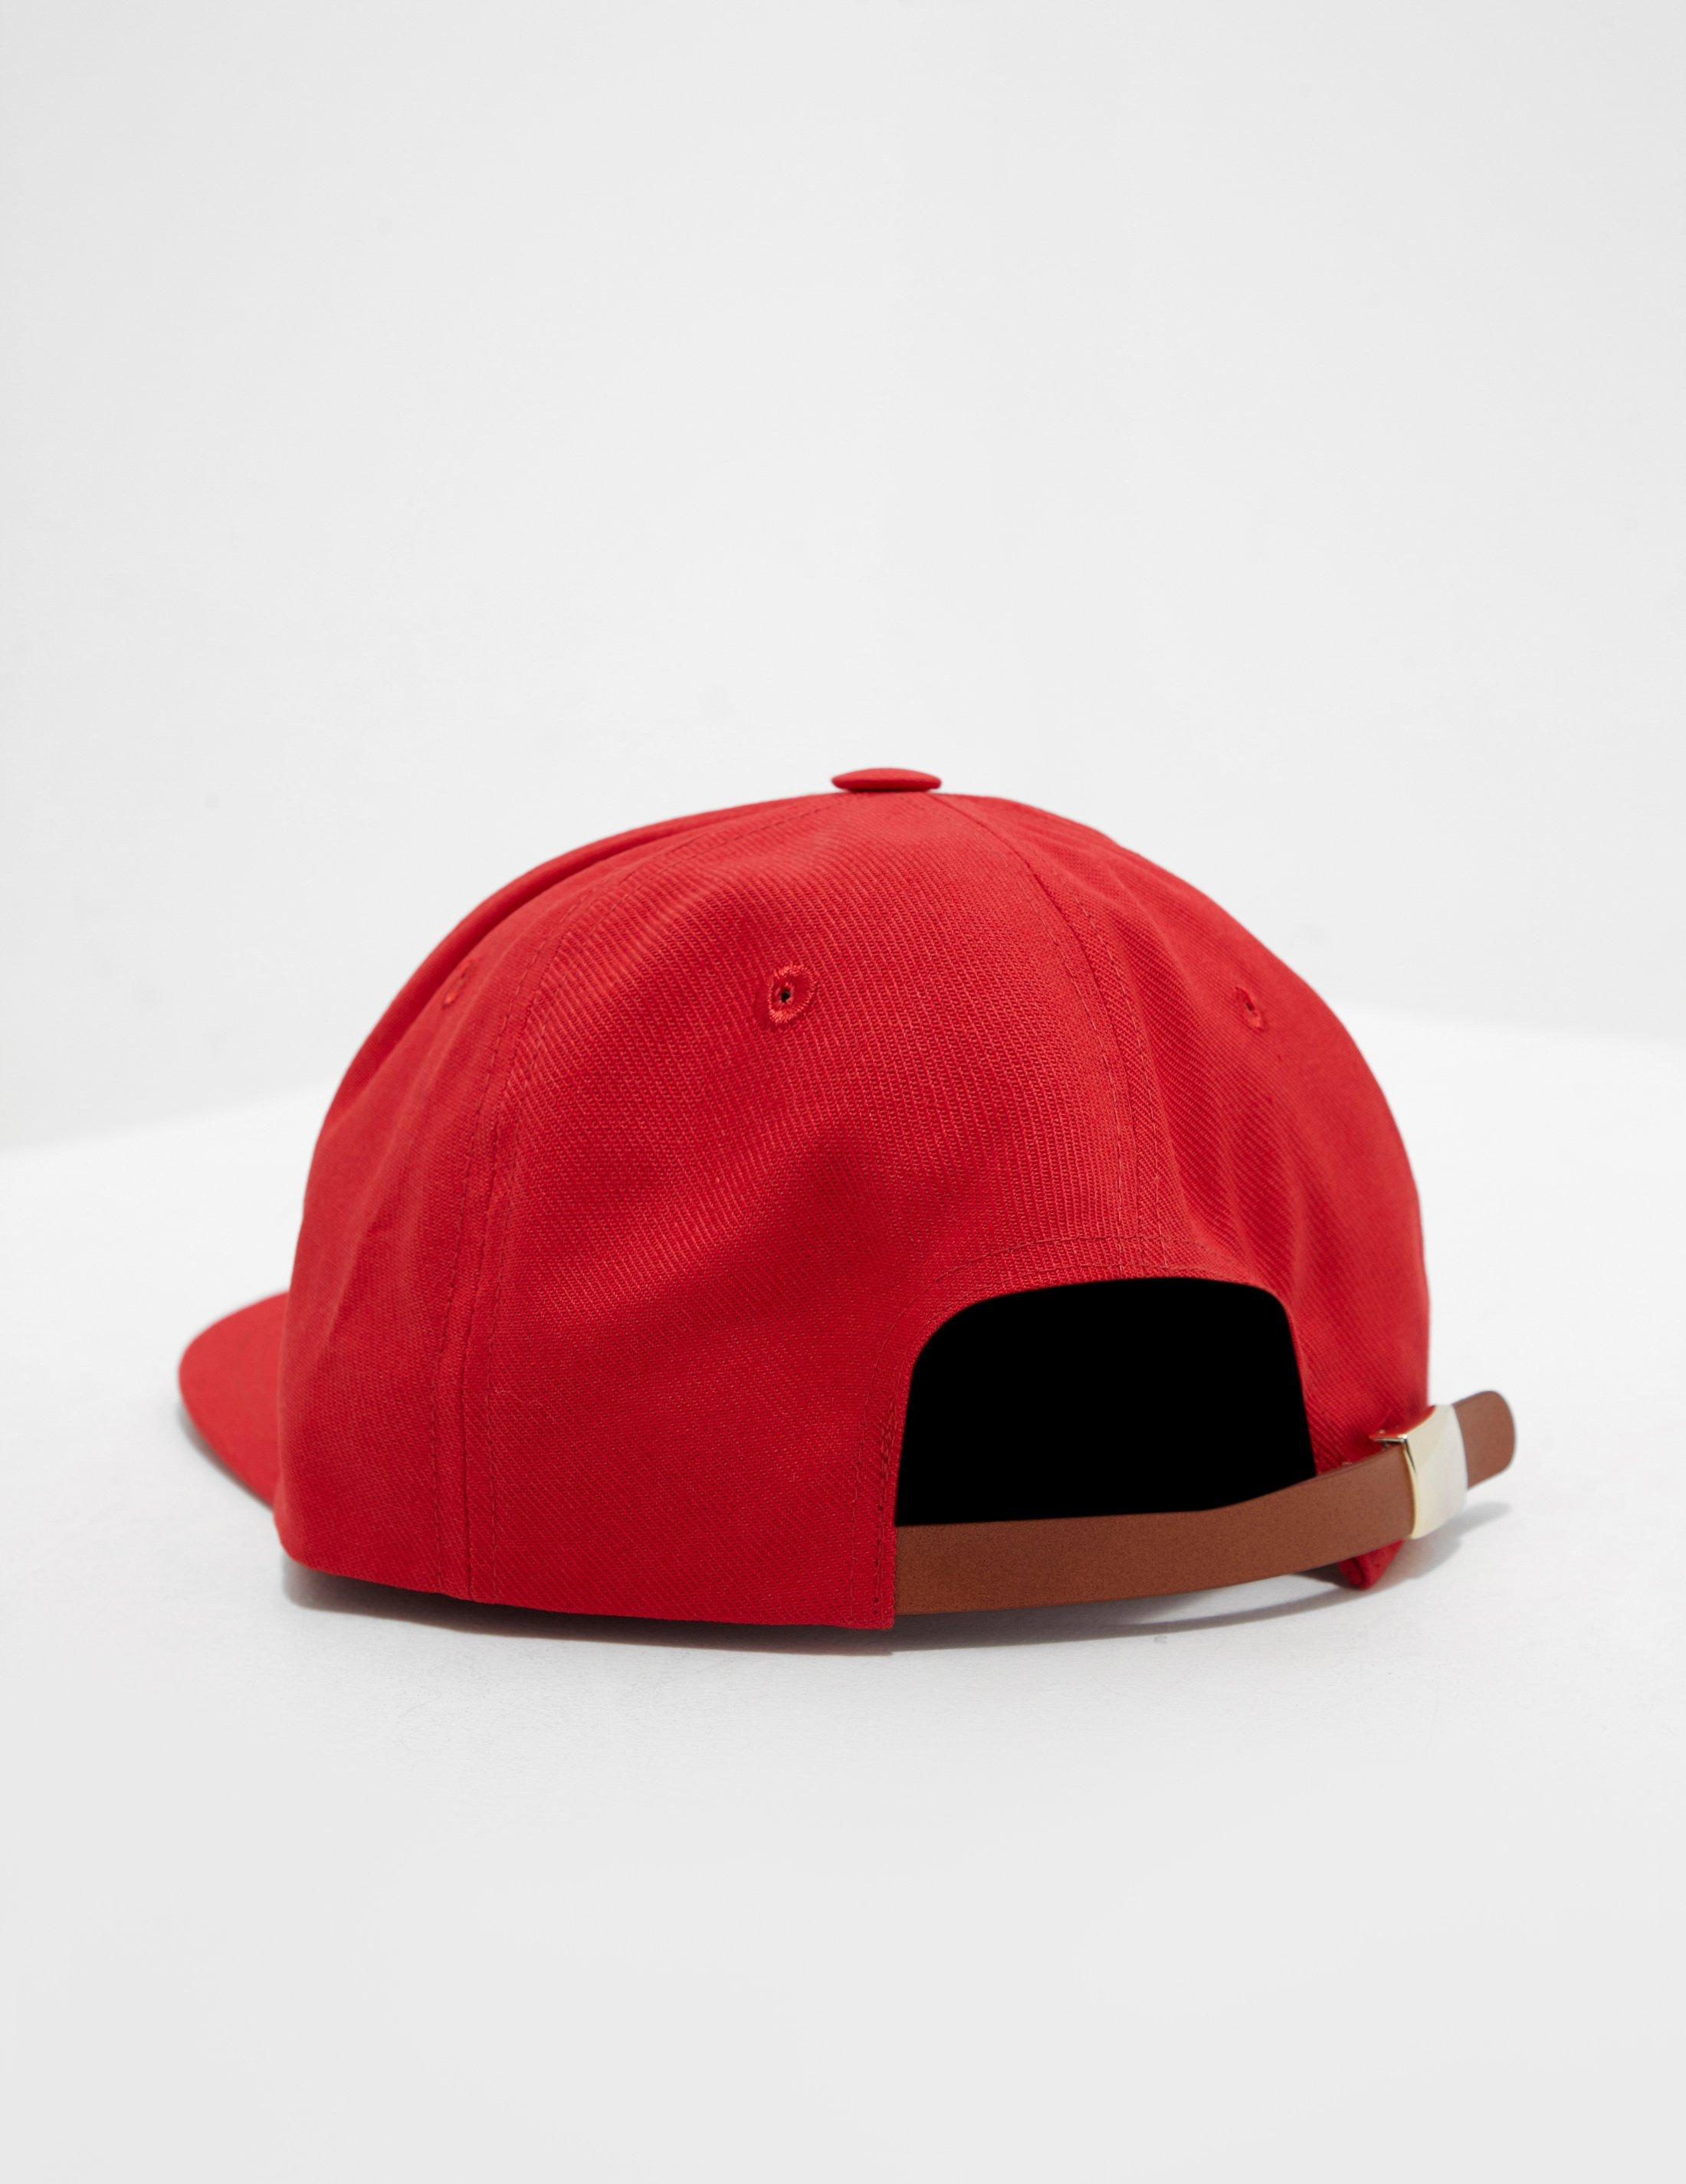 7654a8b382a7d8 Lyst - Maison Kitsuné Mens Fox Cap - Online Exclusive Red in Red for Men